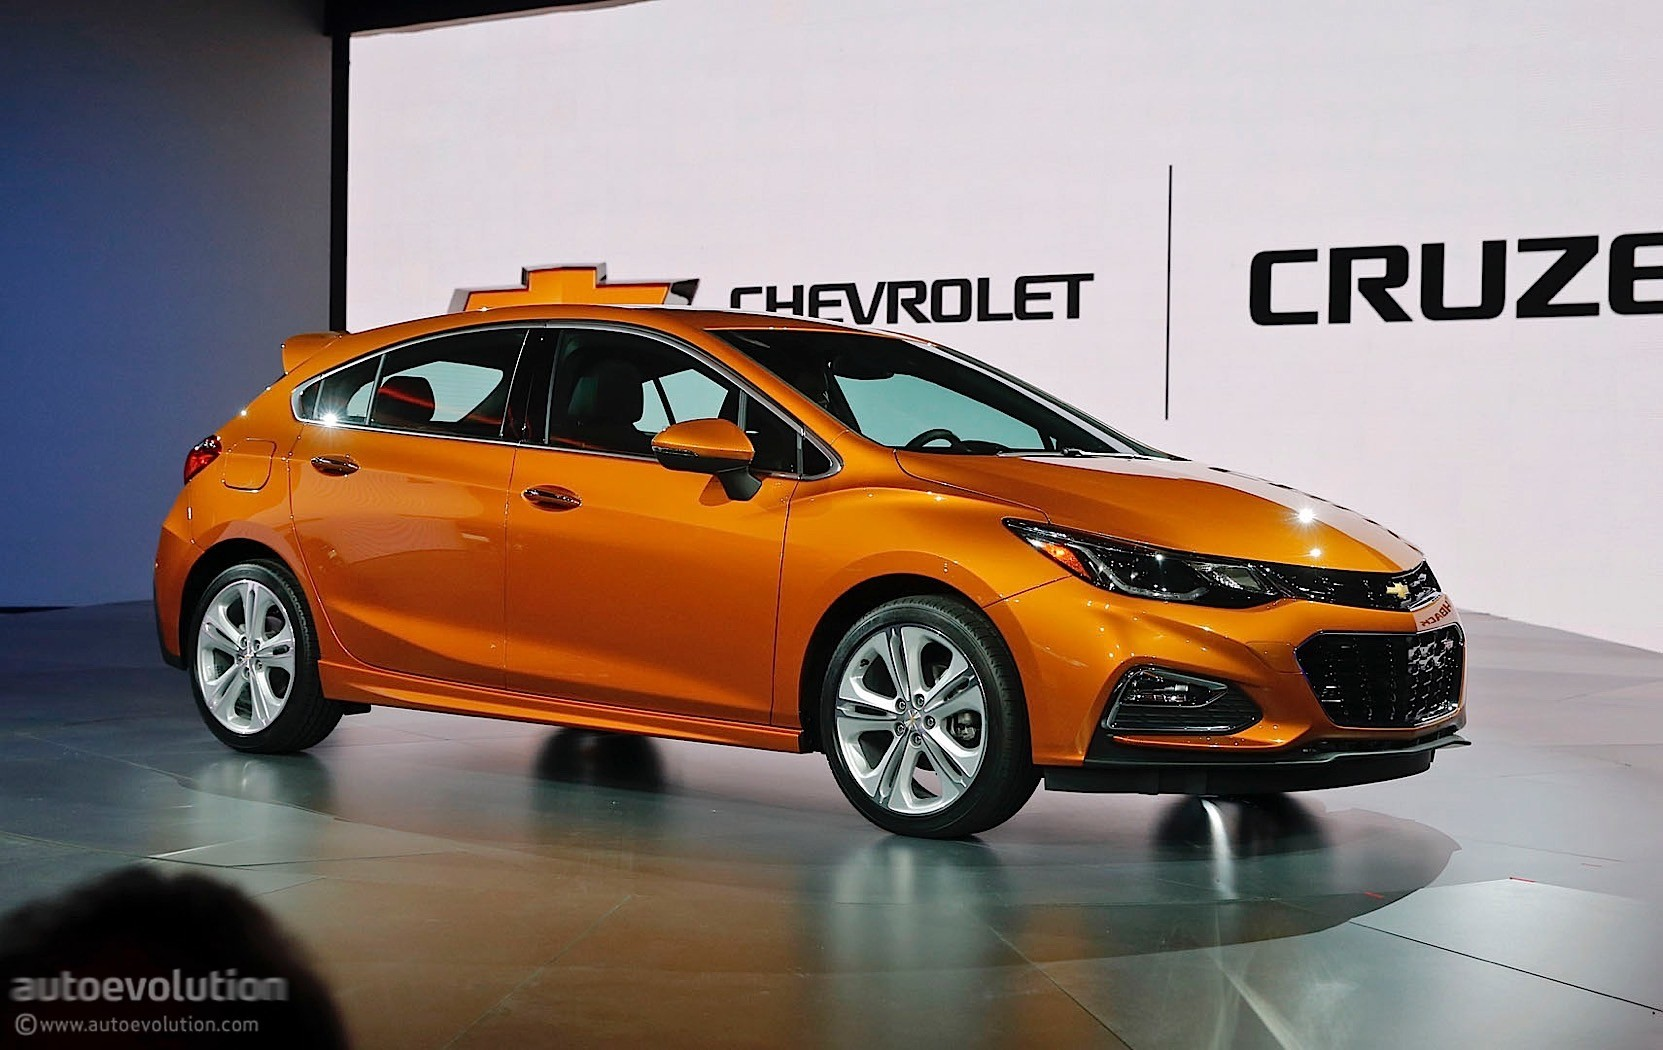 2014 Chevrolet Cruze Eco 2017 Chevrolet Cruze Hatchback Priced From $22,190 ...